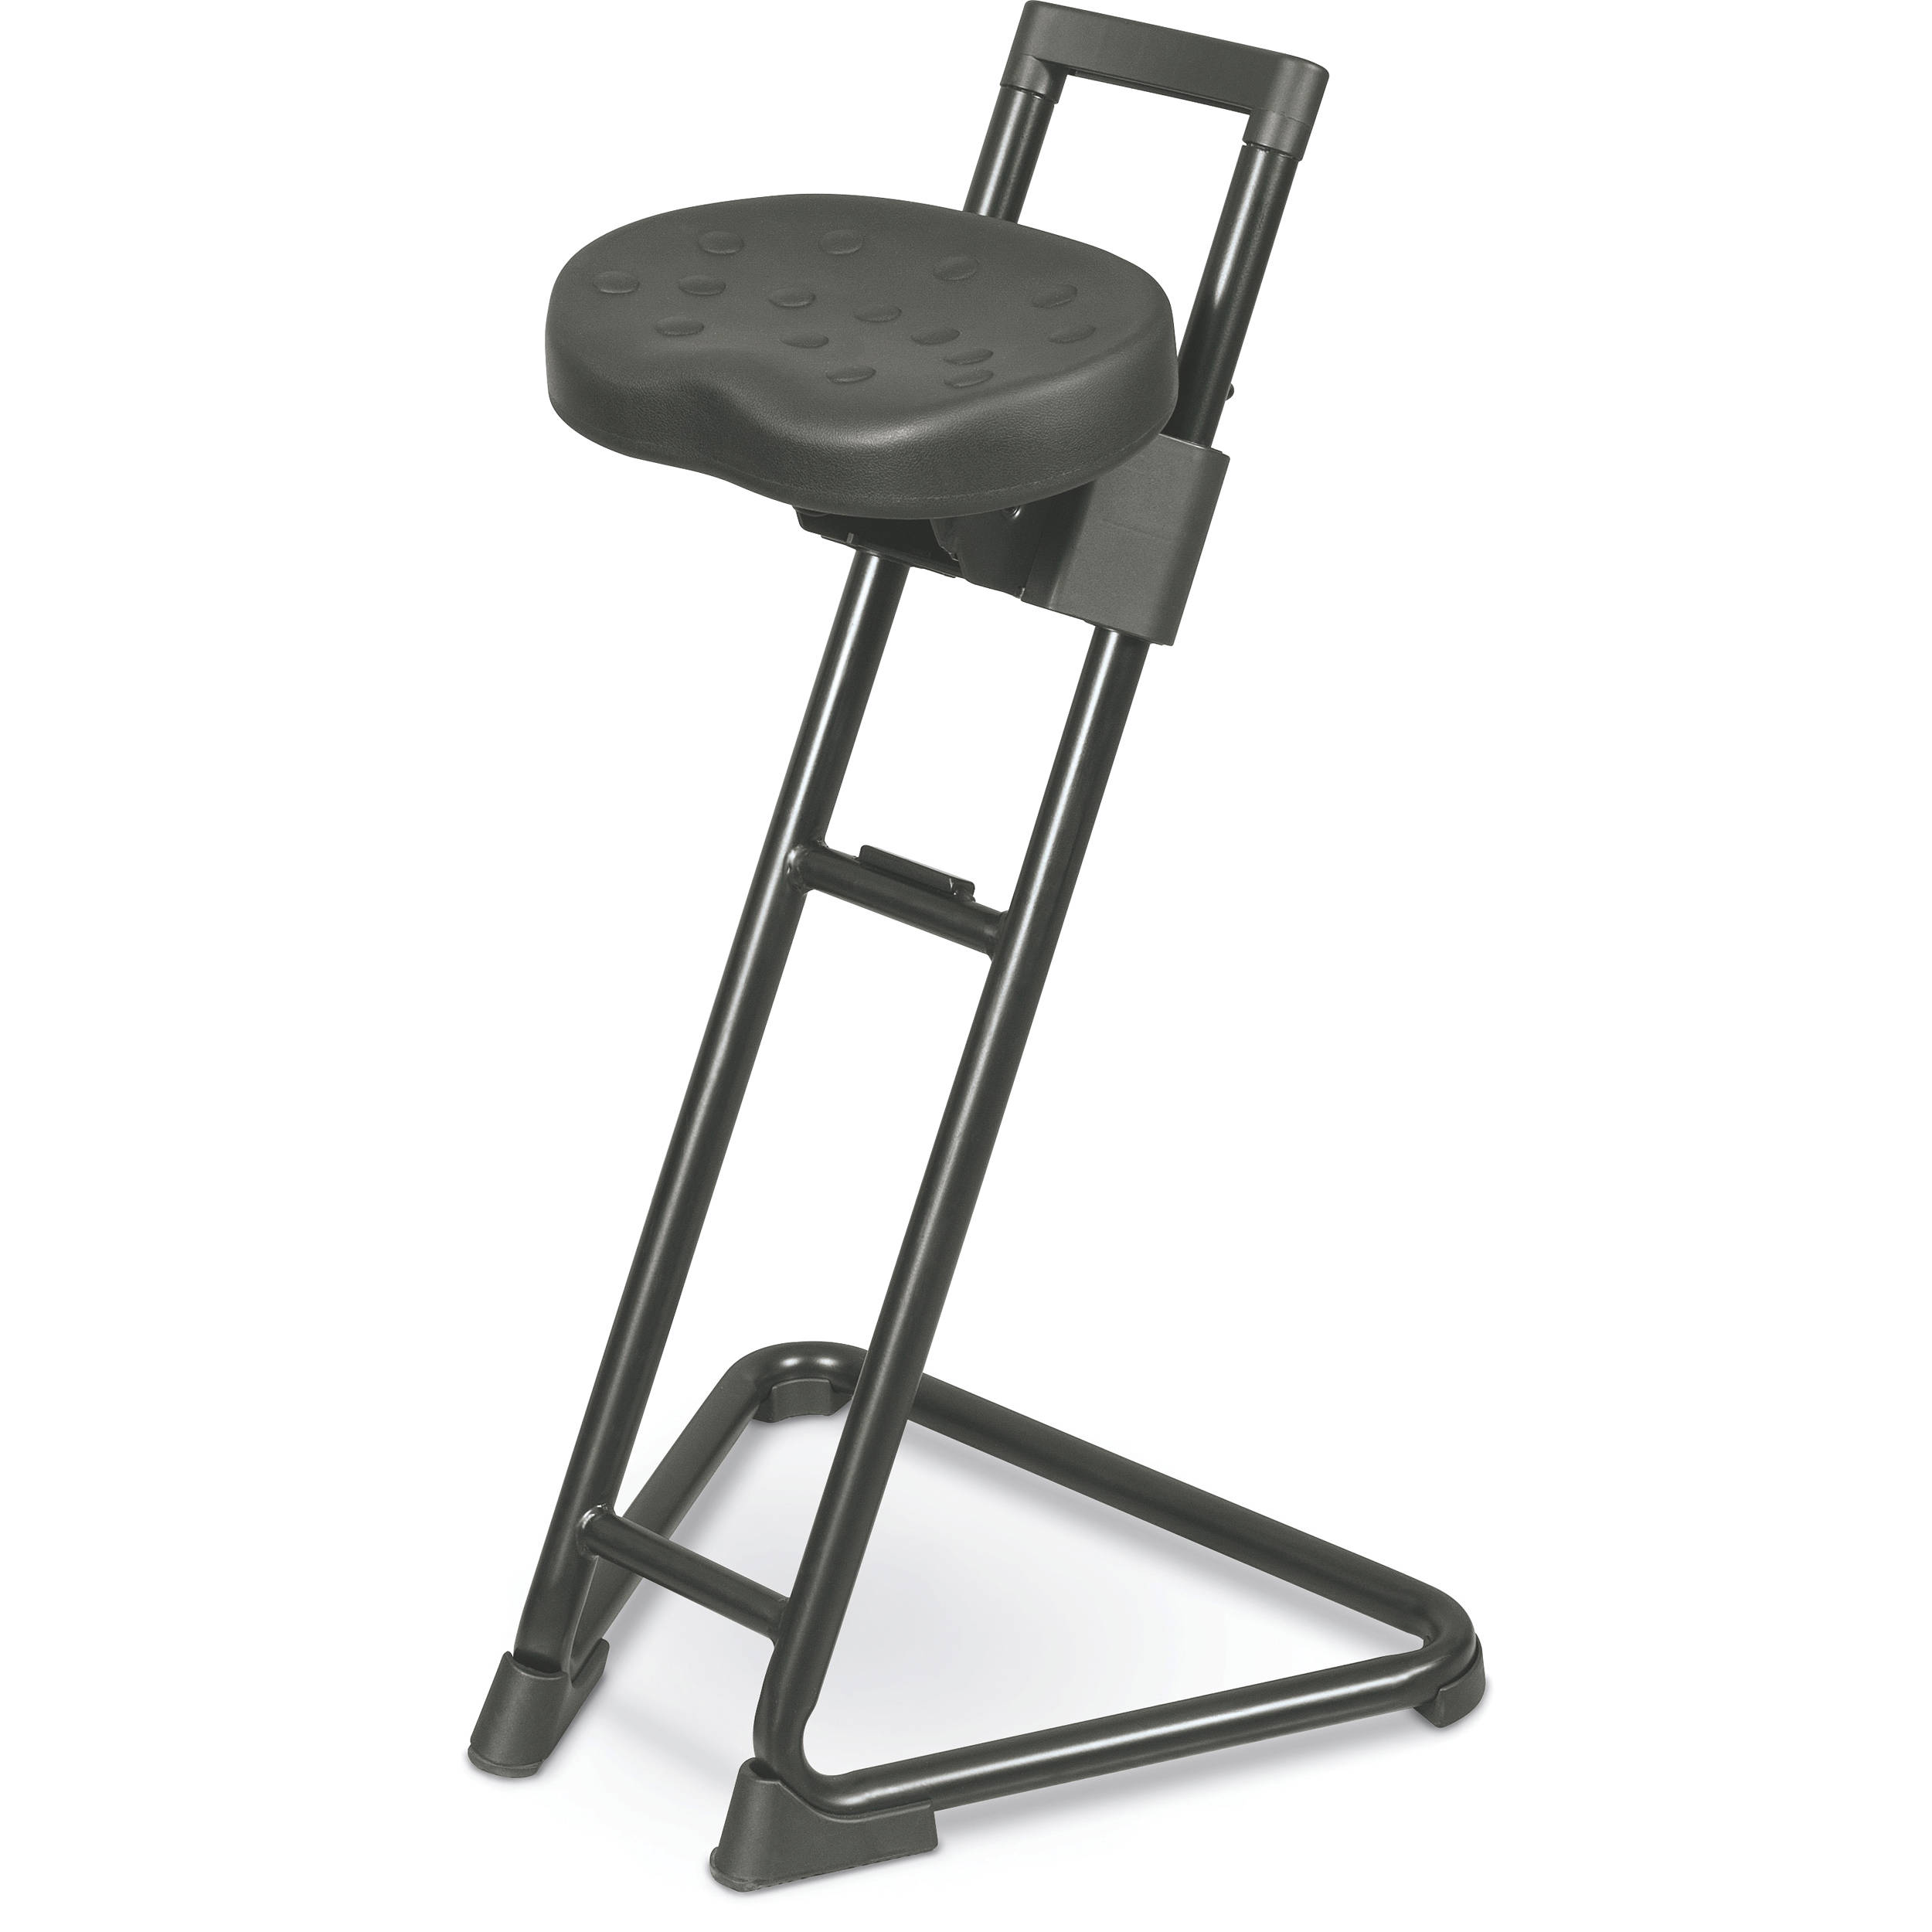 Balt 34797 Up Rite Height Adjustable Stool